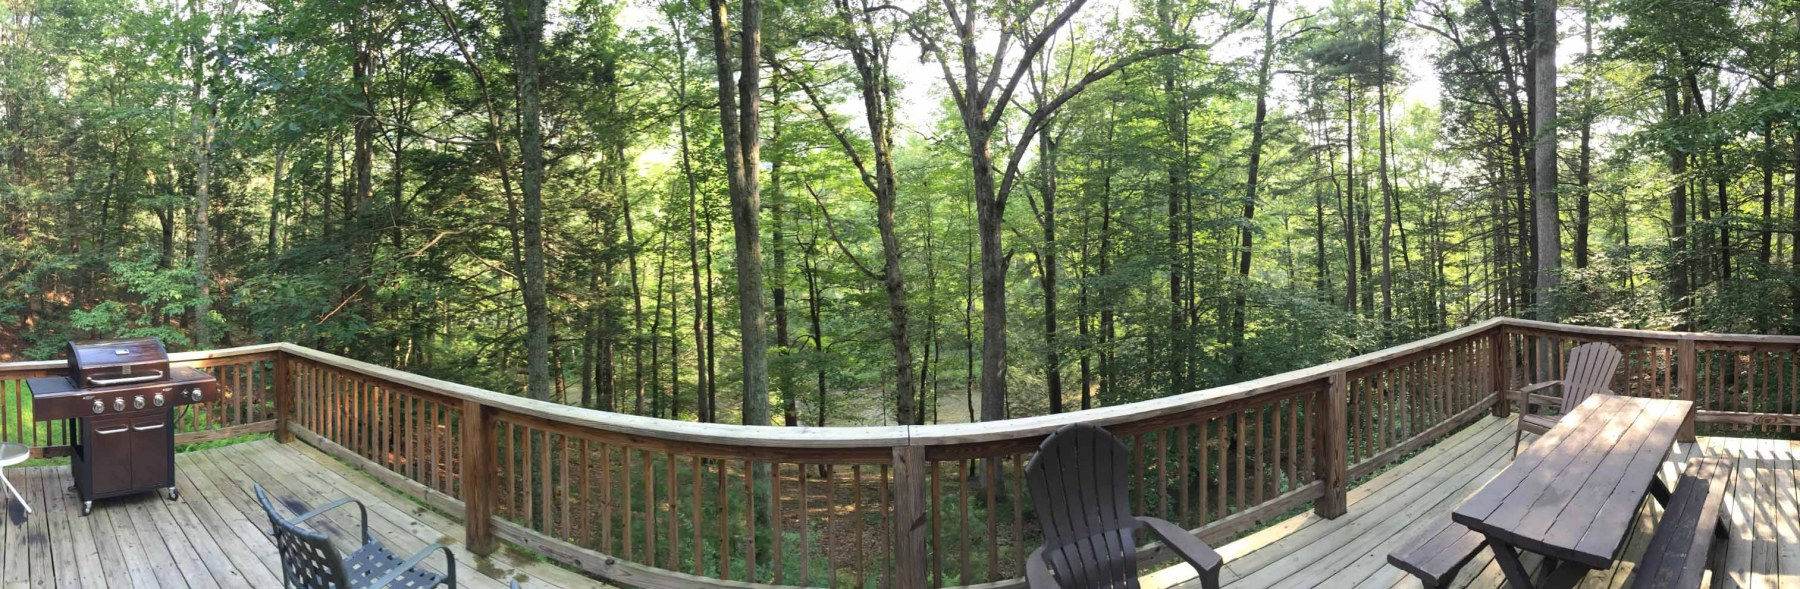 Panoramic-View-from-Deck